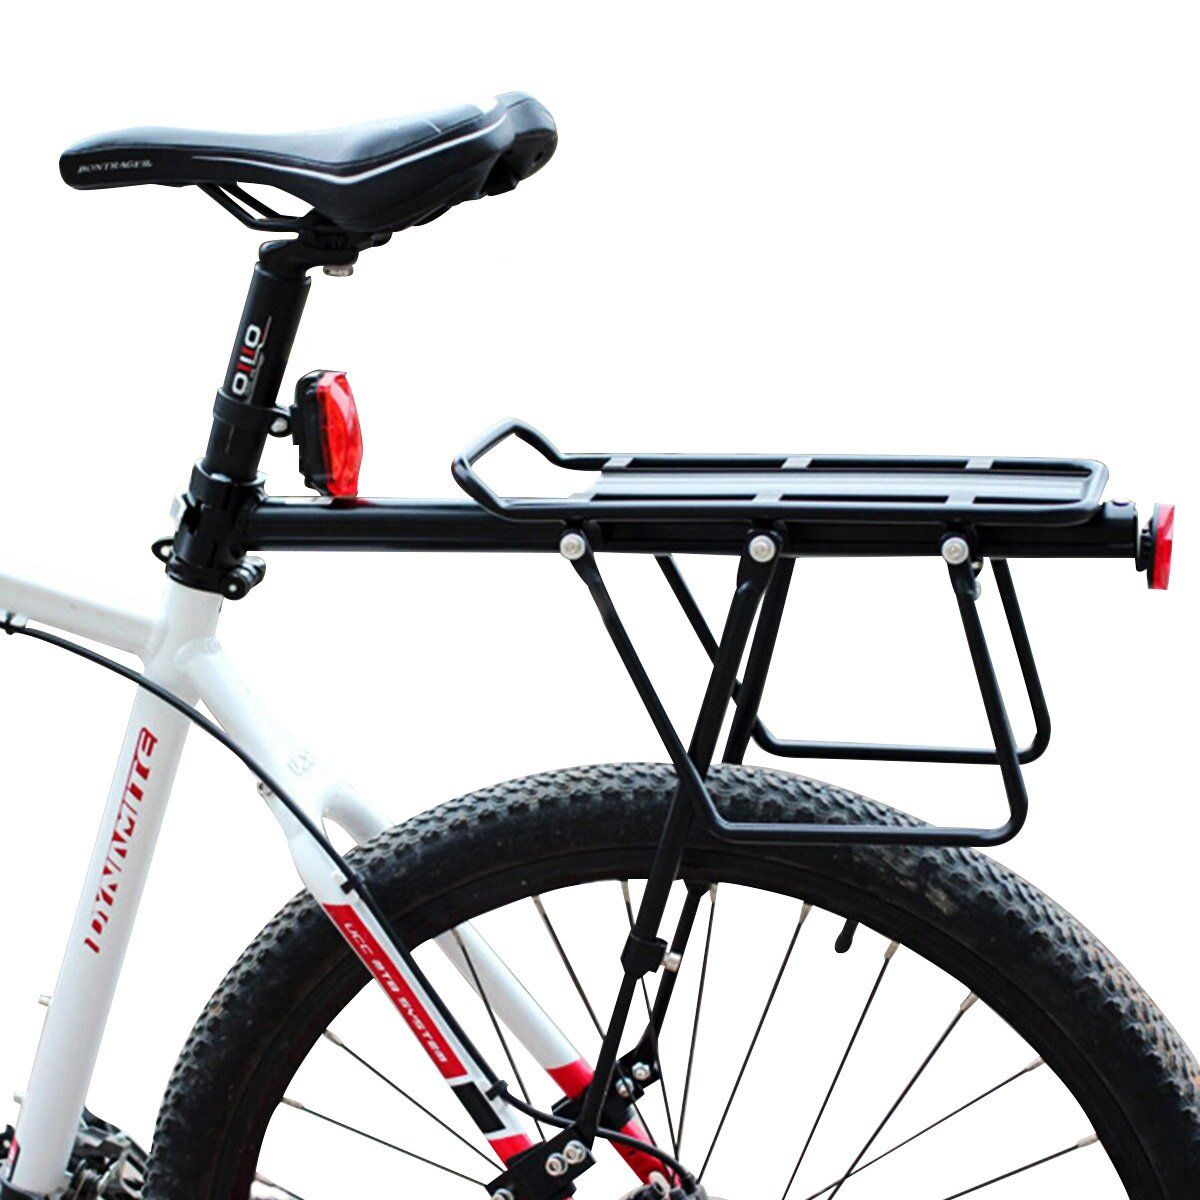 Bikight Bicycle Bike Cargo Rack Rear Back Seat Carrier Shelf Quick